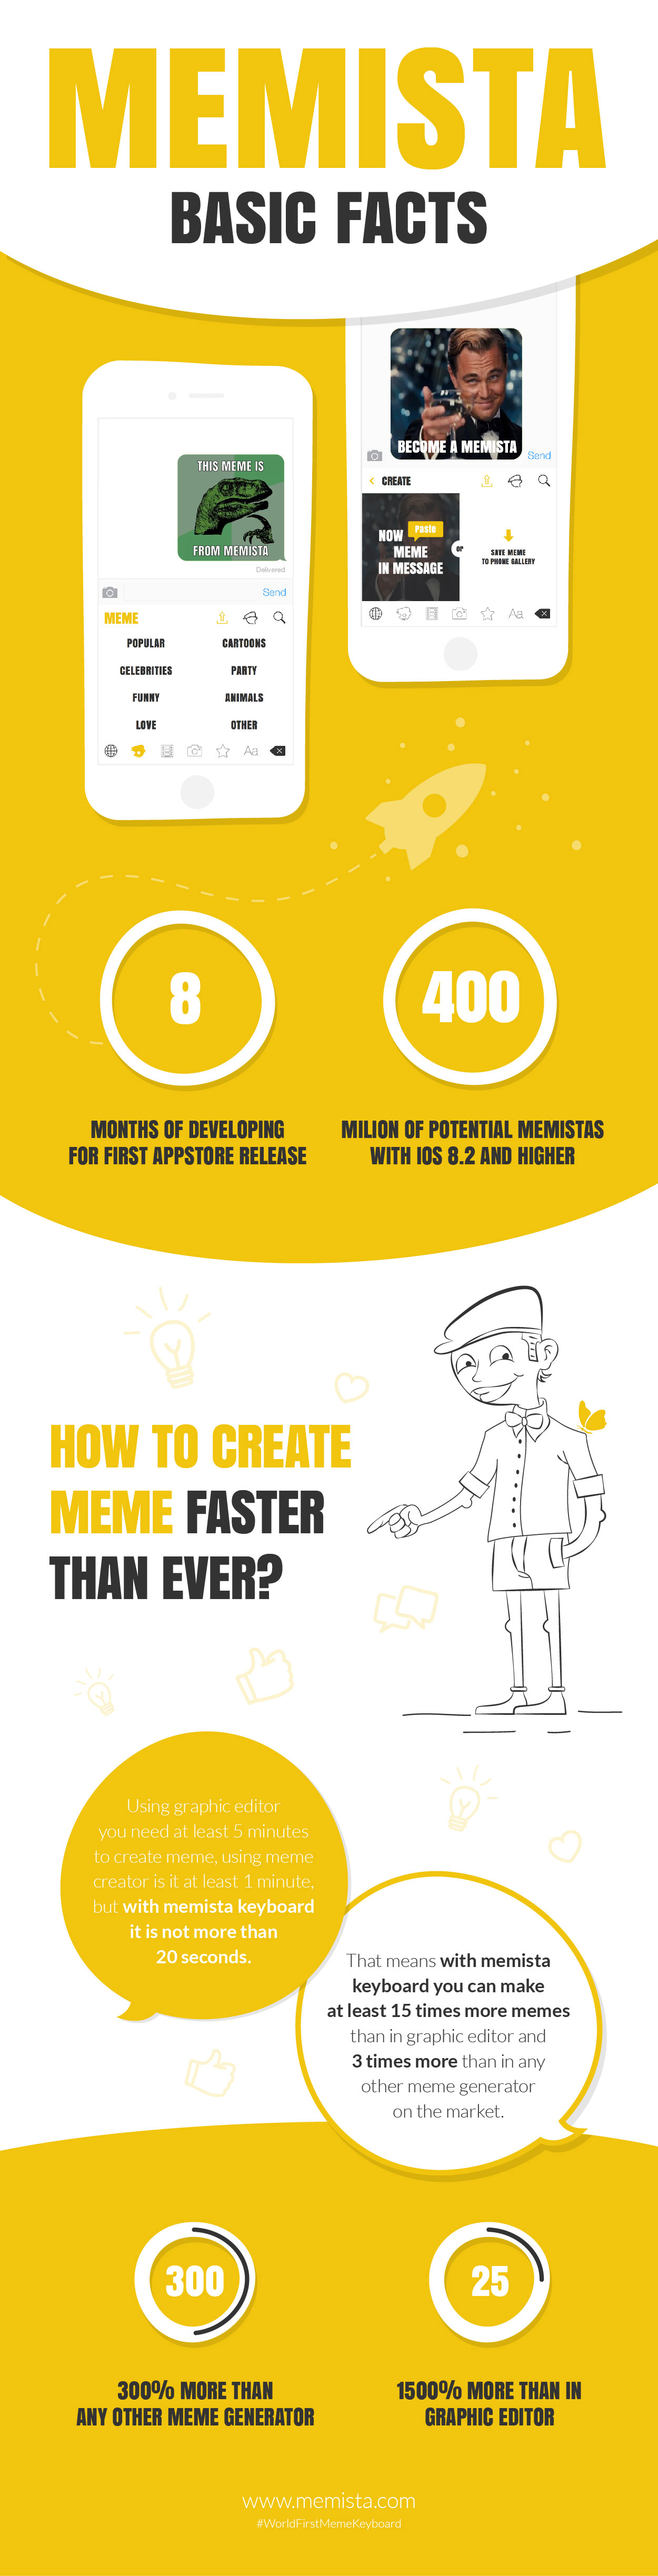 Memista facts: 8 months of developing, 400 milion of potential users